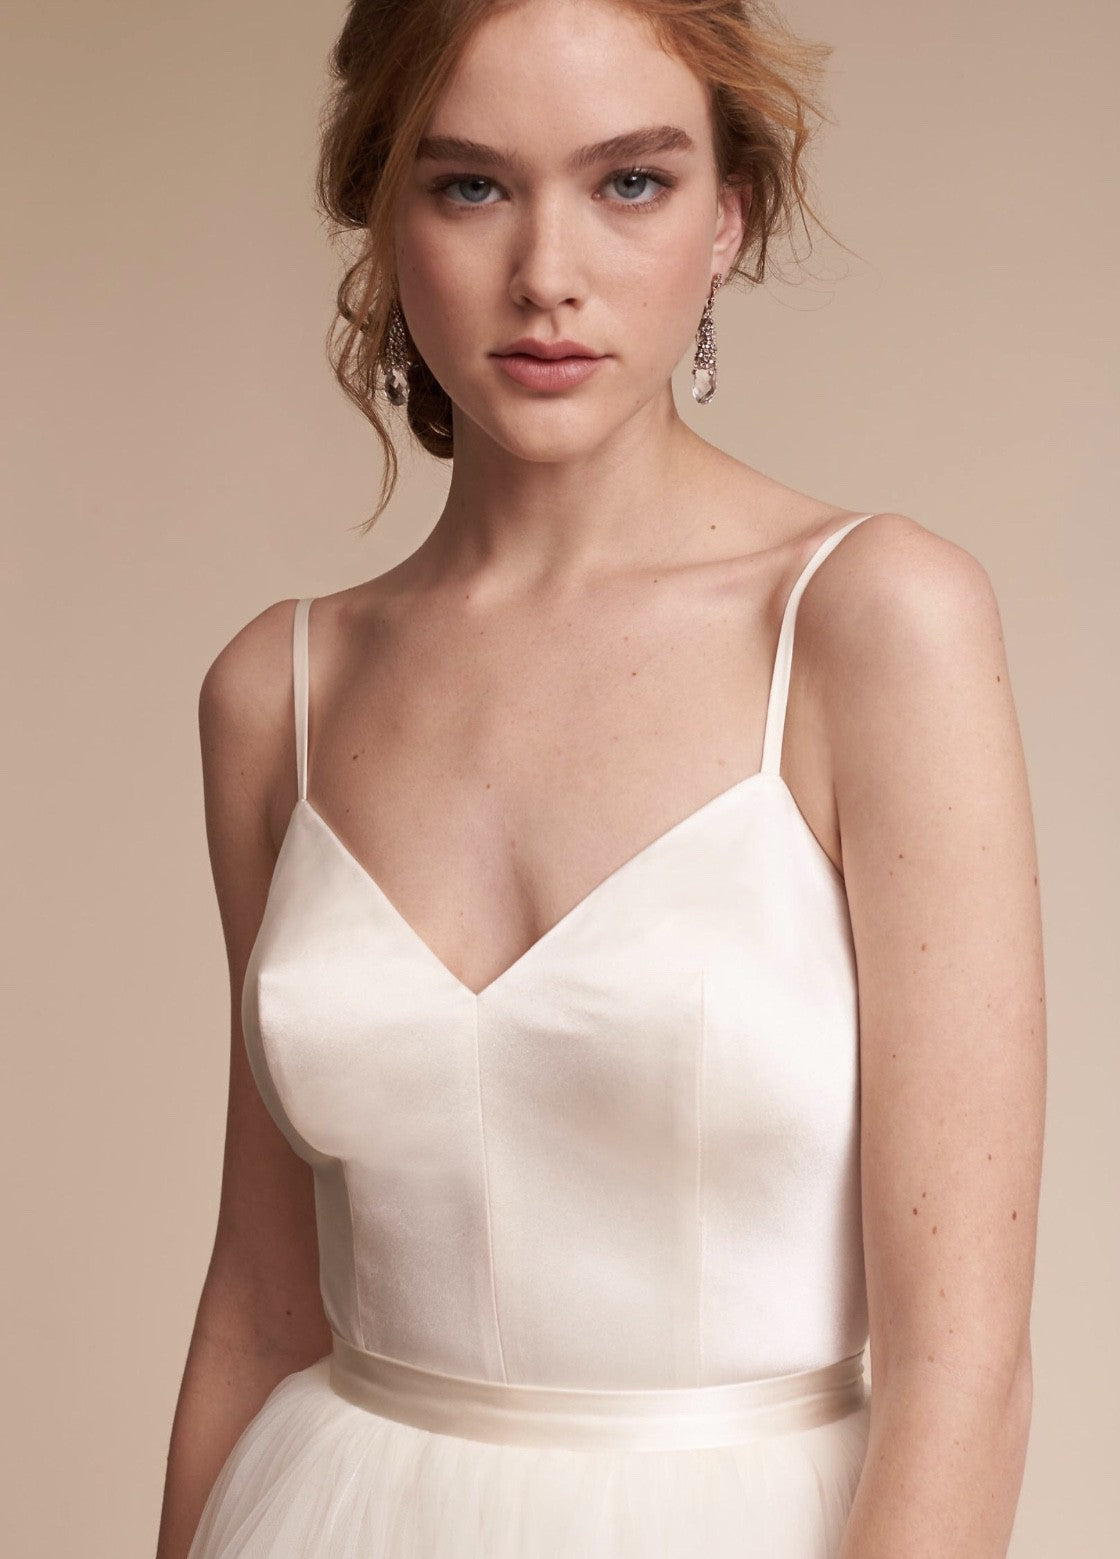 BHLDN Catherine Deane Jewel Bodysuit